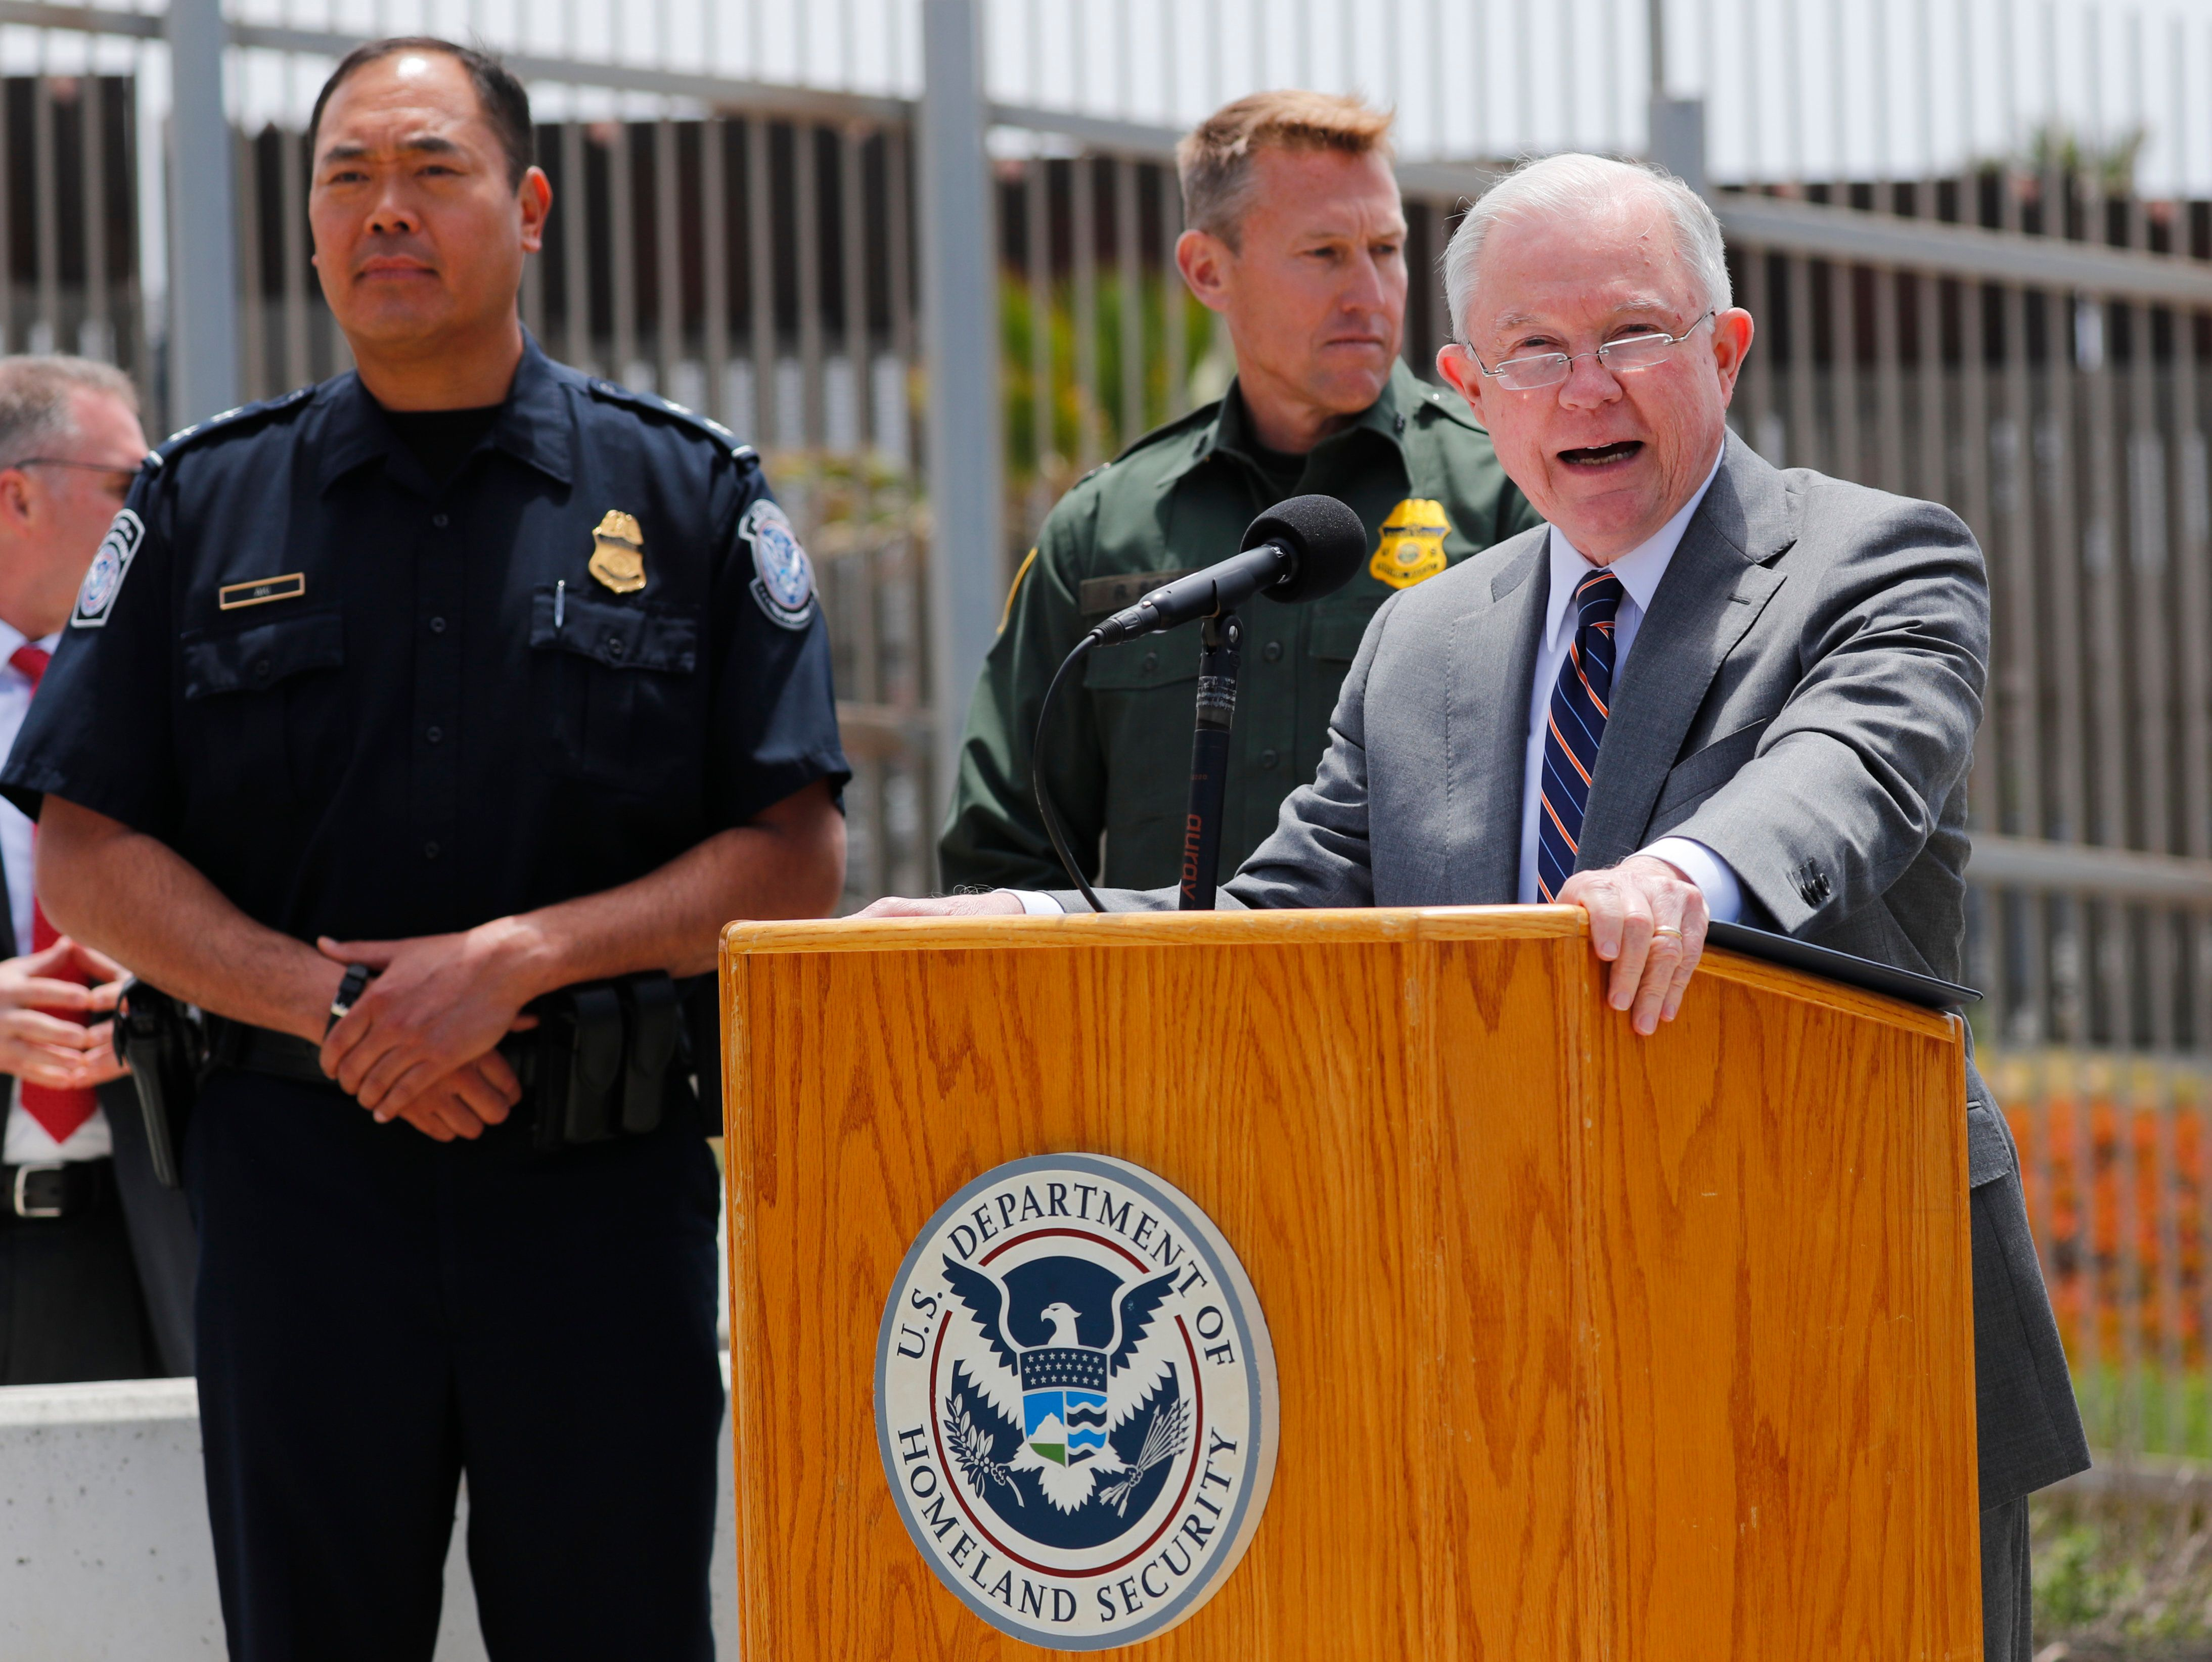 U.S. Attorney General Jeff Sessions speaks during a visit to the U.S. Mexico border wall for a press conference with Immigration and Customs Enforcement Deputy Director Thomas D. Homan, discussing immigration enforcement actions of the Trump Administration near San Diego, California, U.S. May 7, 2018. REUTERS/Mike Blake